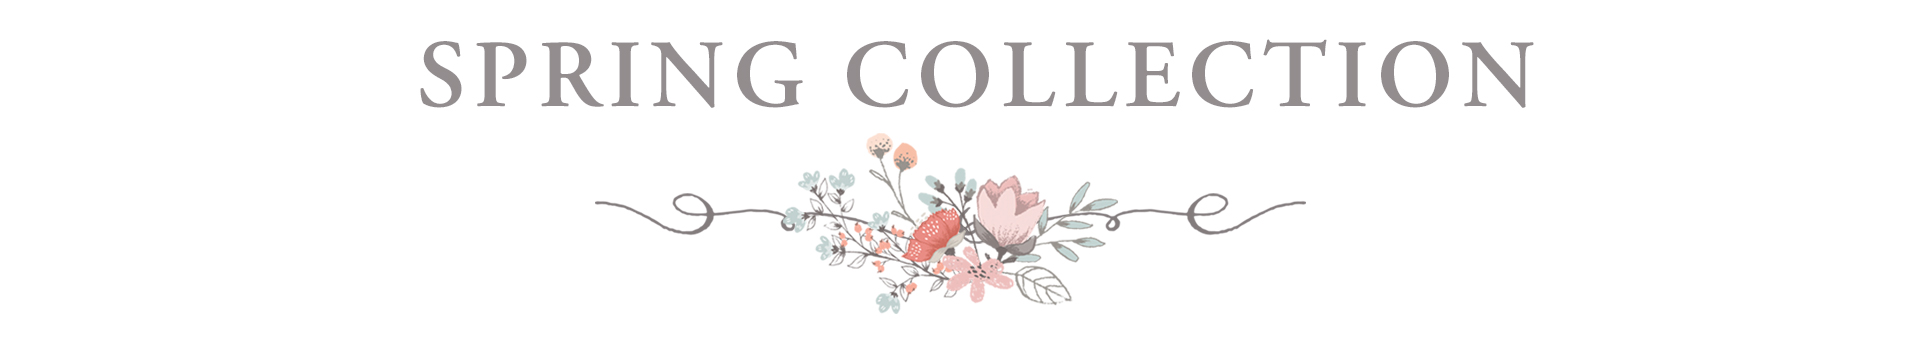 spring_collection_title.jpg